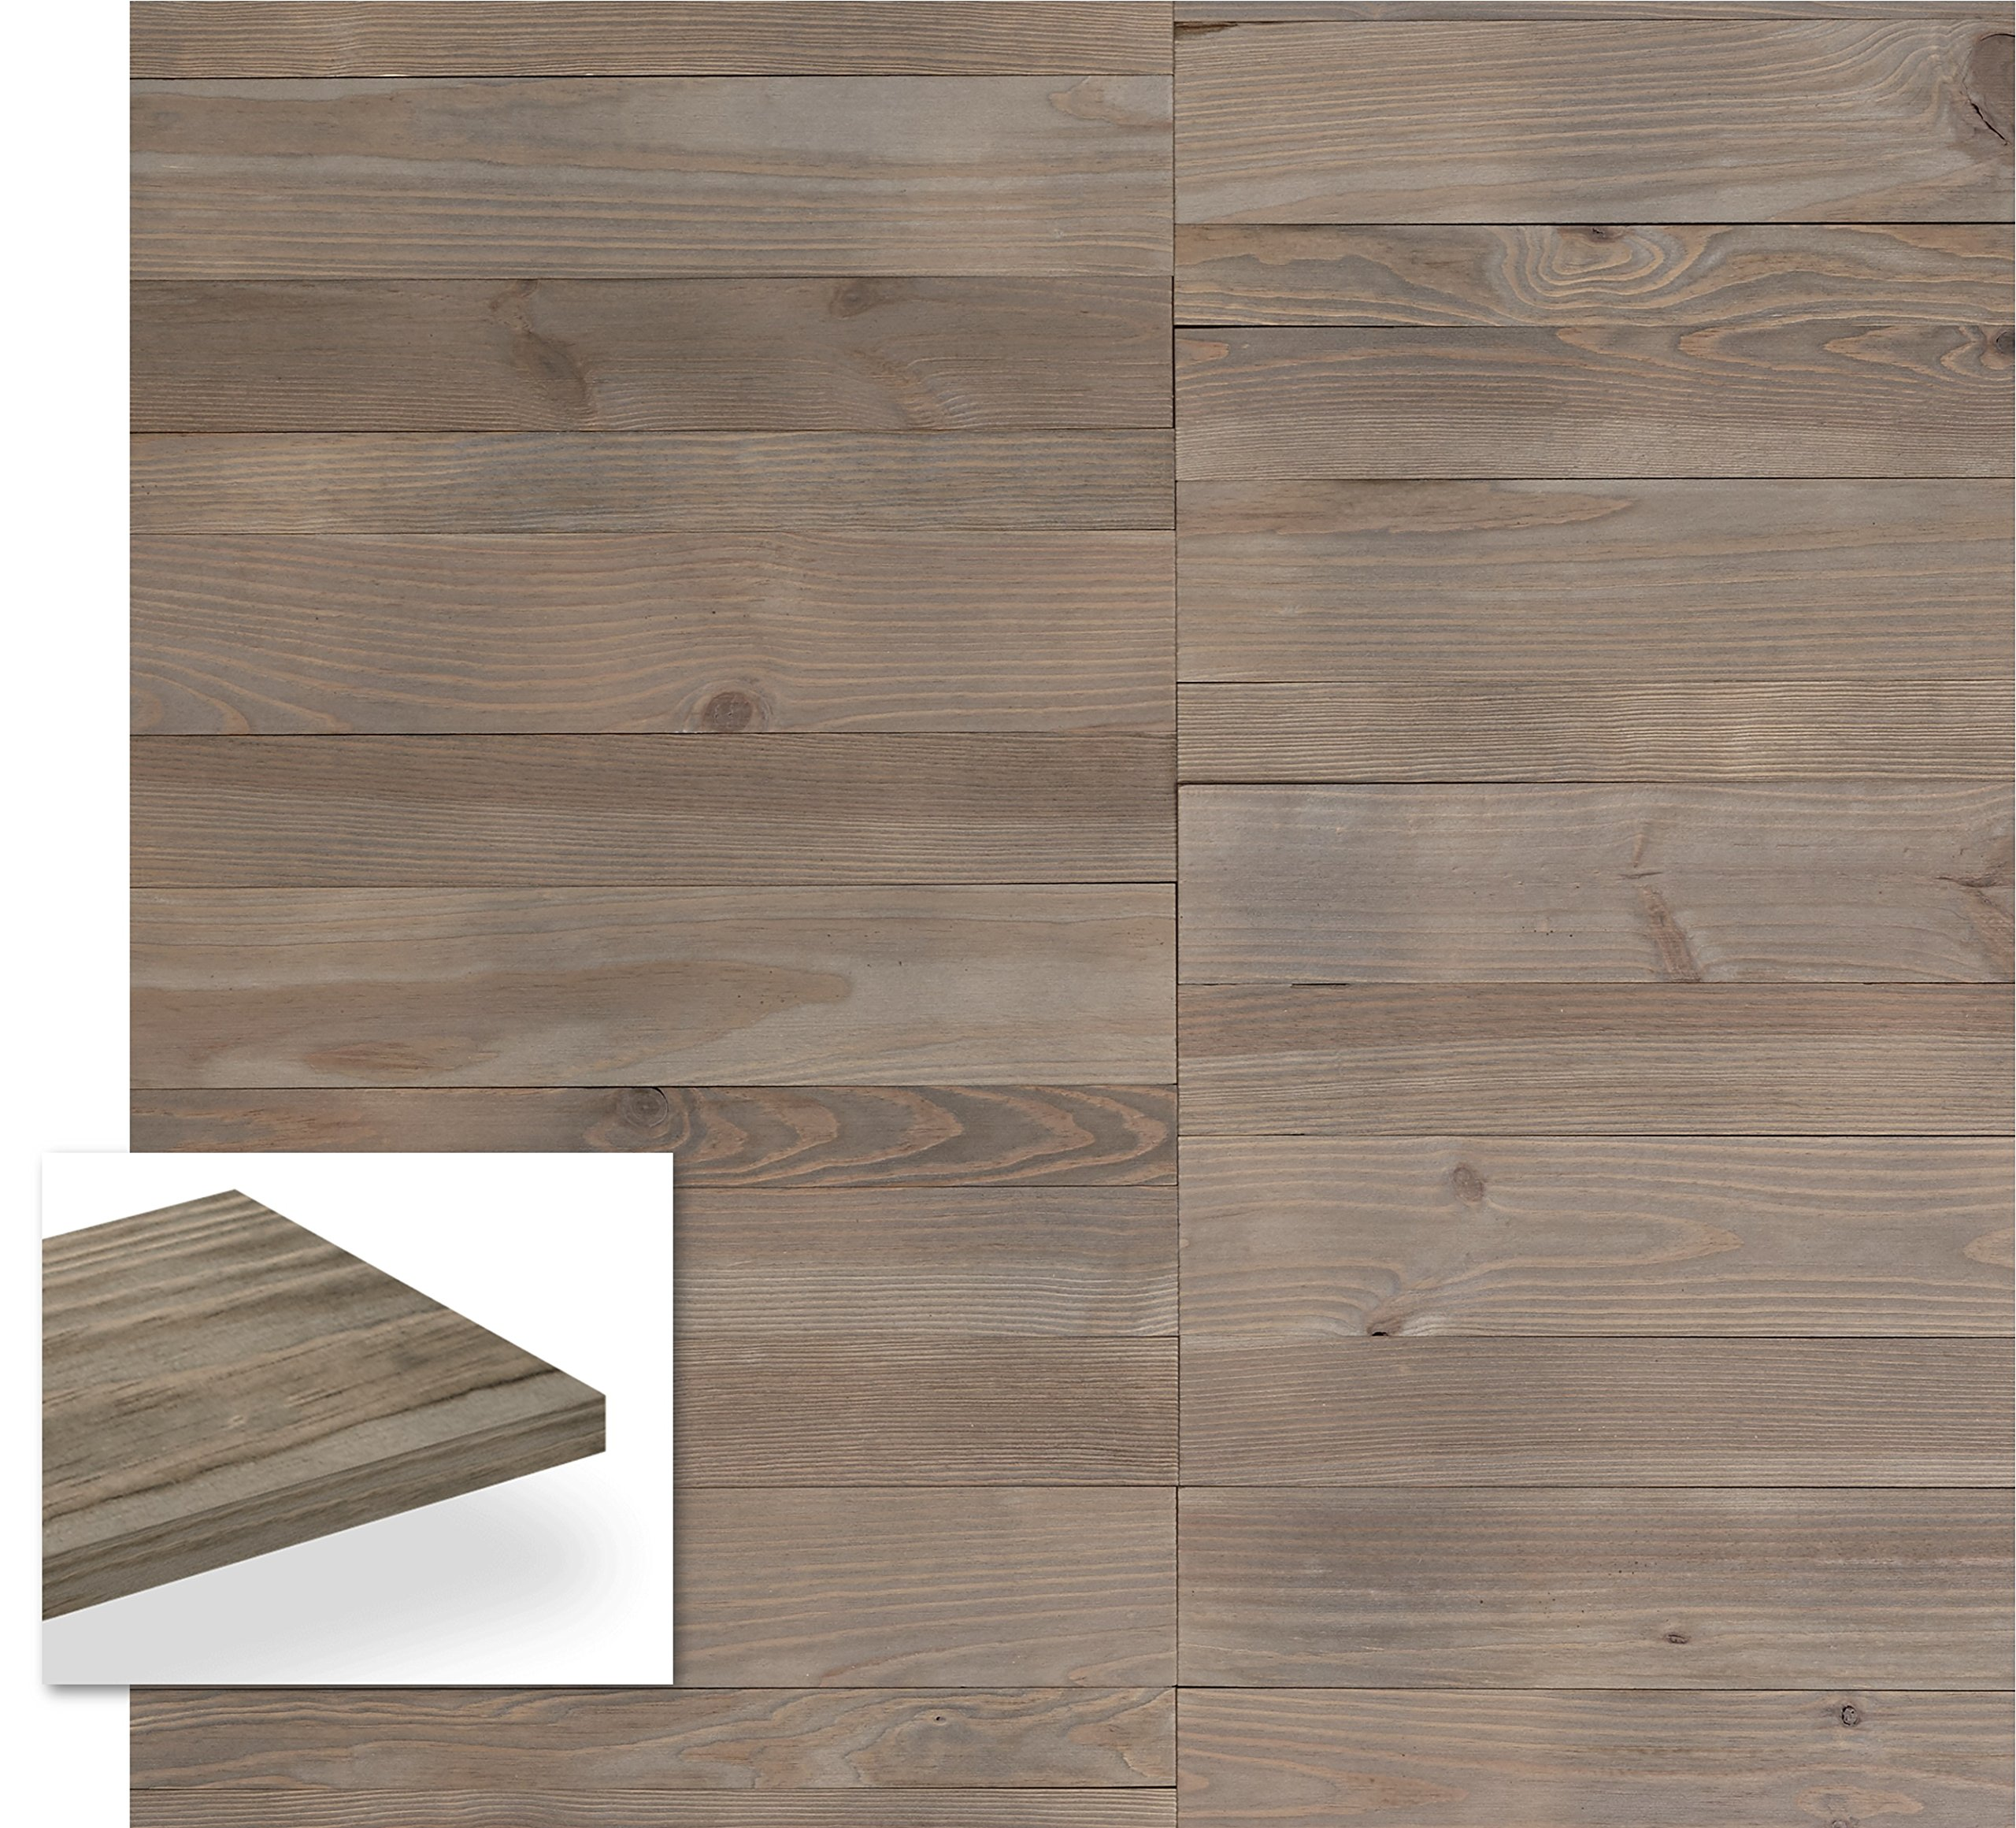 Timberwall - WELD Collection Pewter - DIY Solid Wood Wall Panel - Easy Peel and Stick application - 10.3 Sq Ft